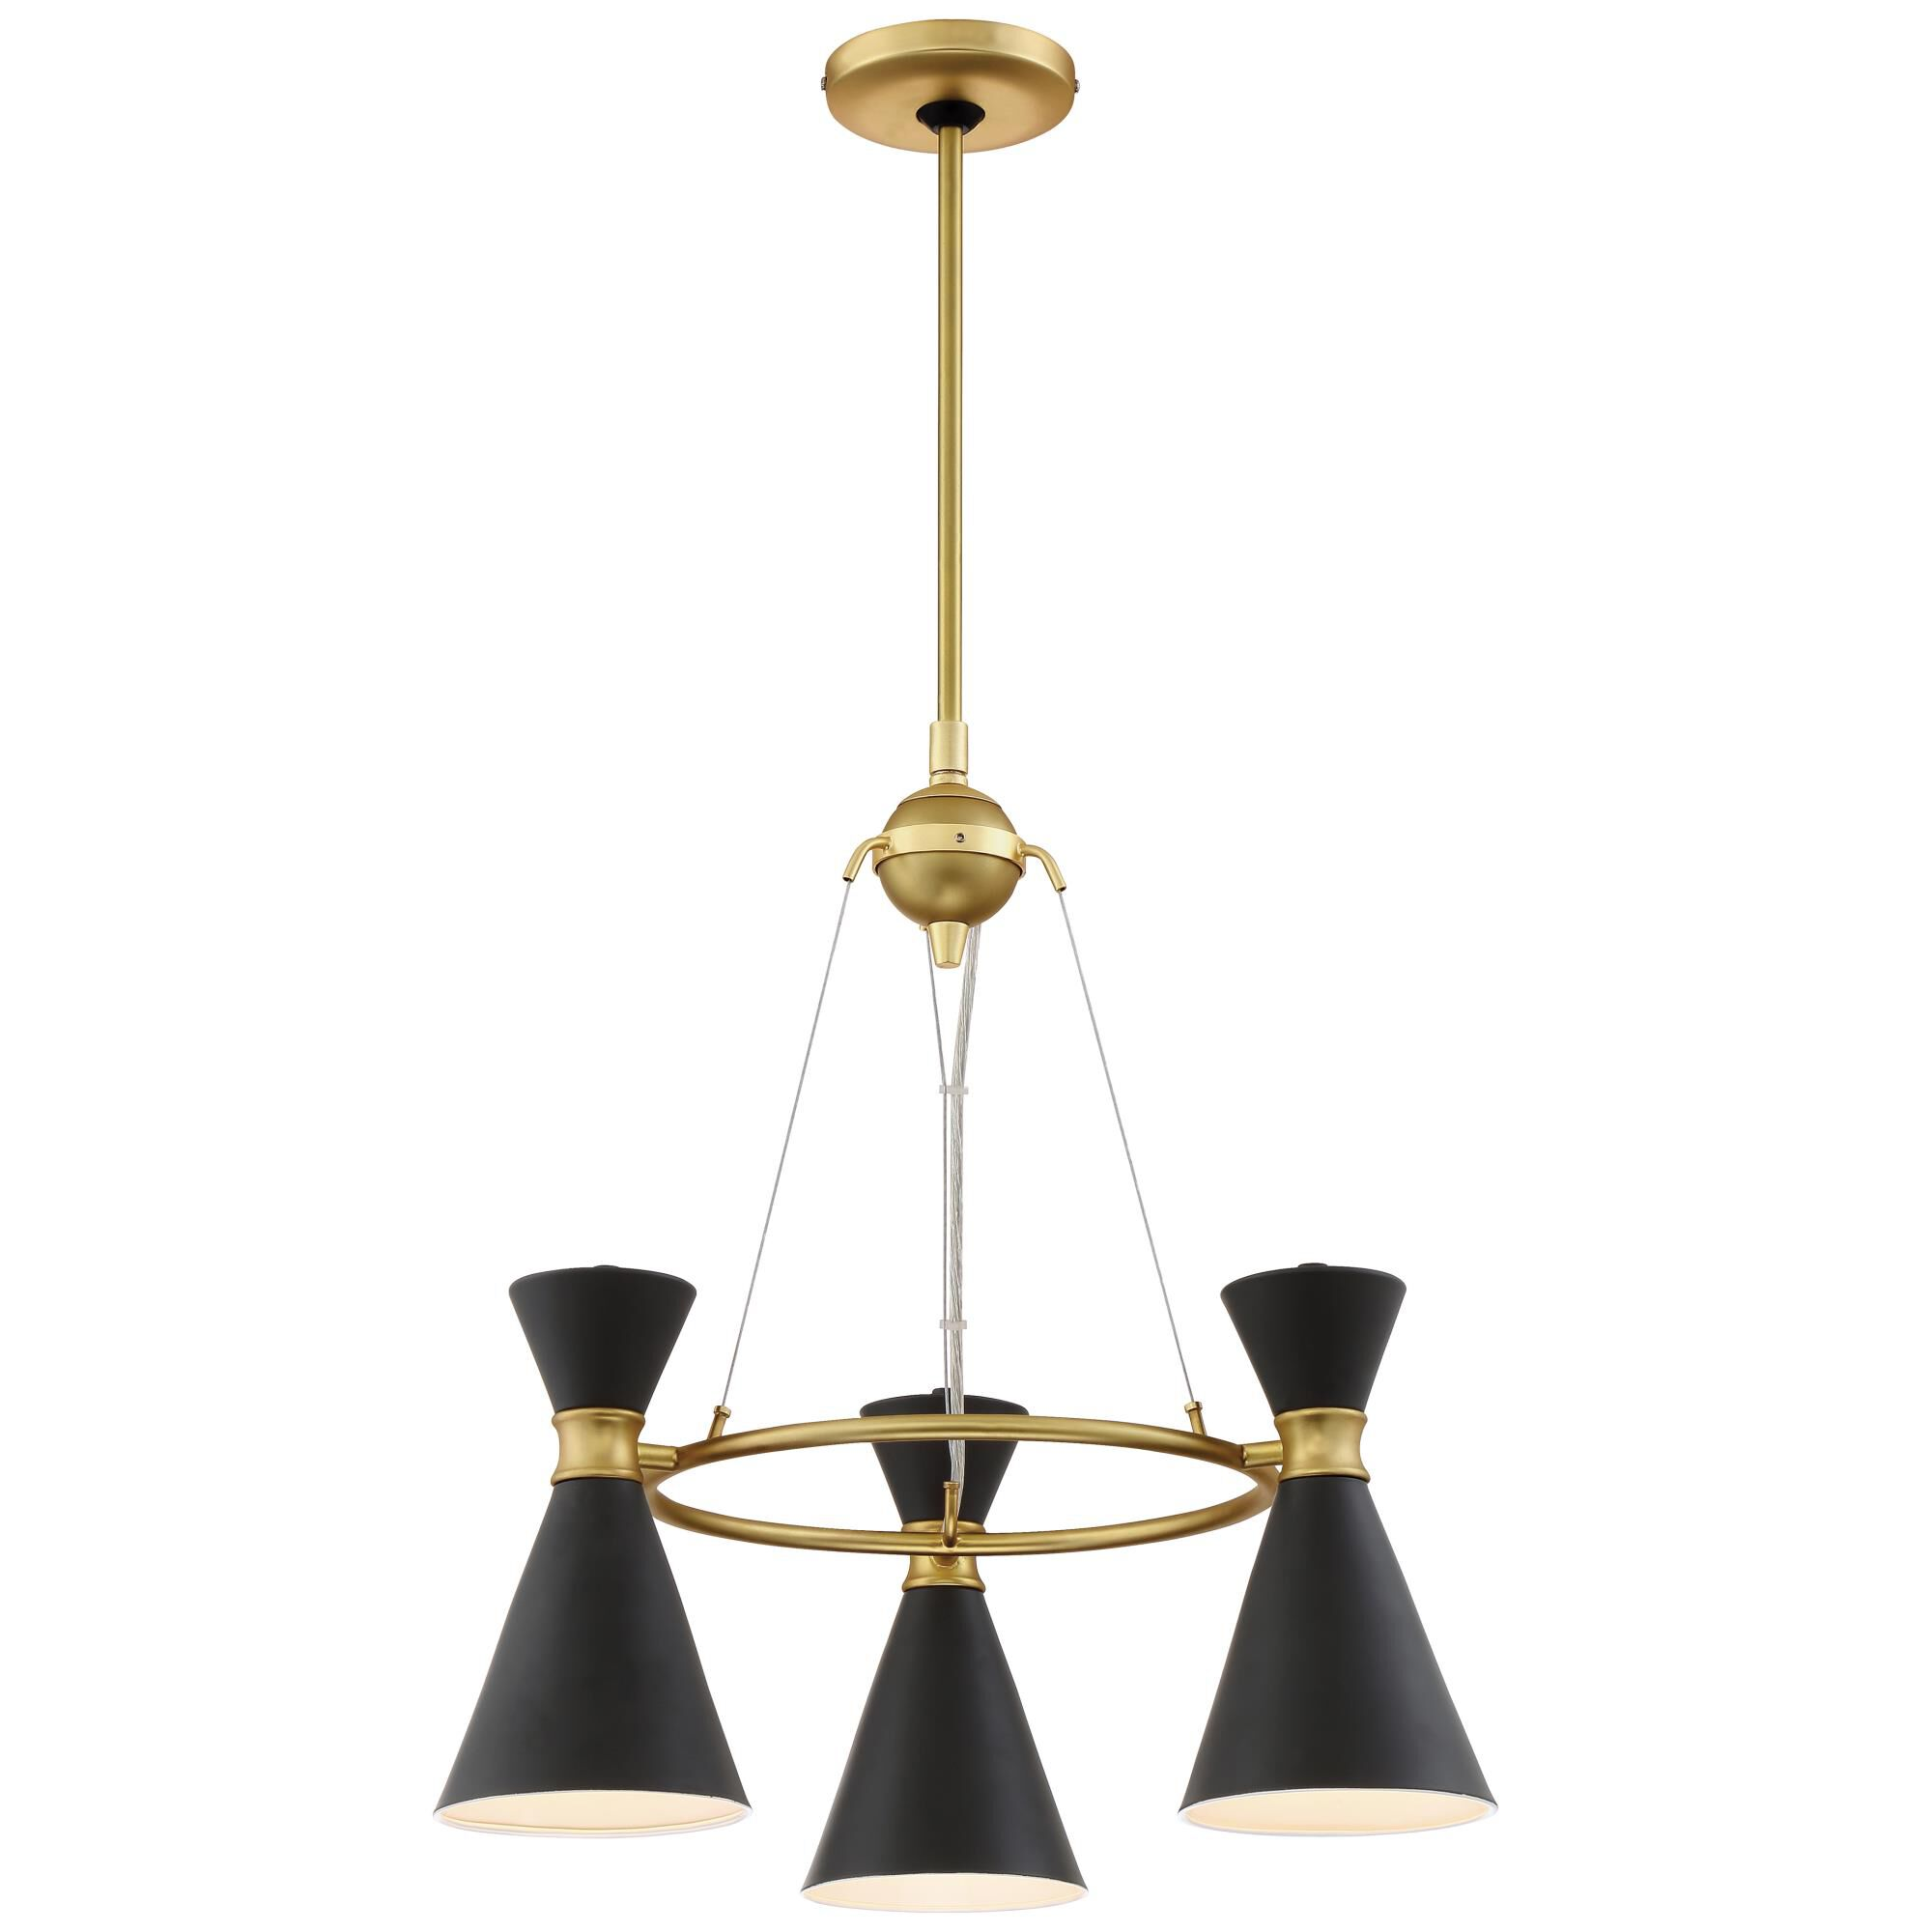 Kovacs Conic 20 Inch 3 Light Mini Chandelier Conic - P1823-248 - Transitional